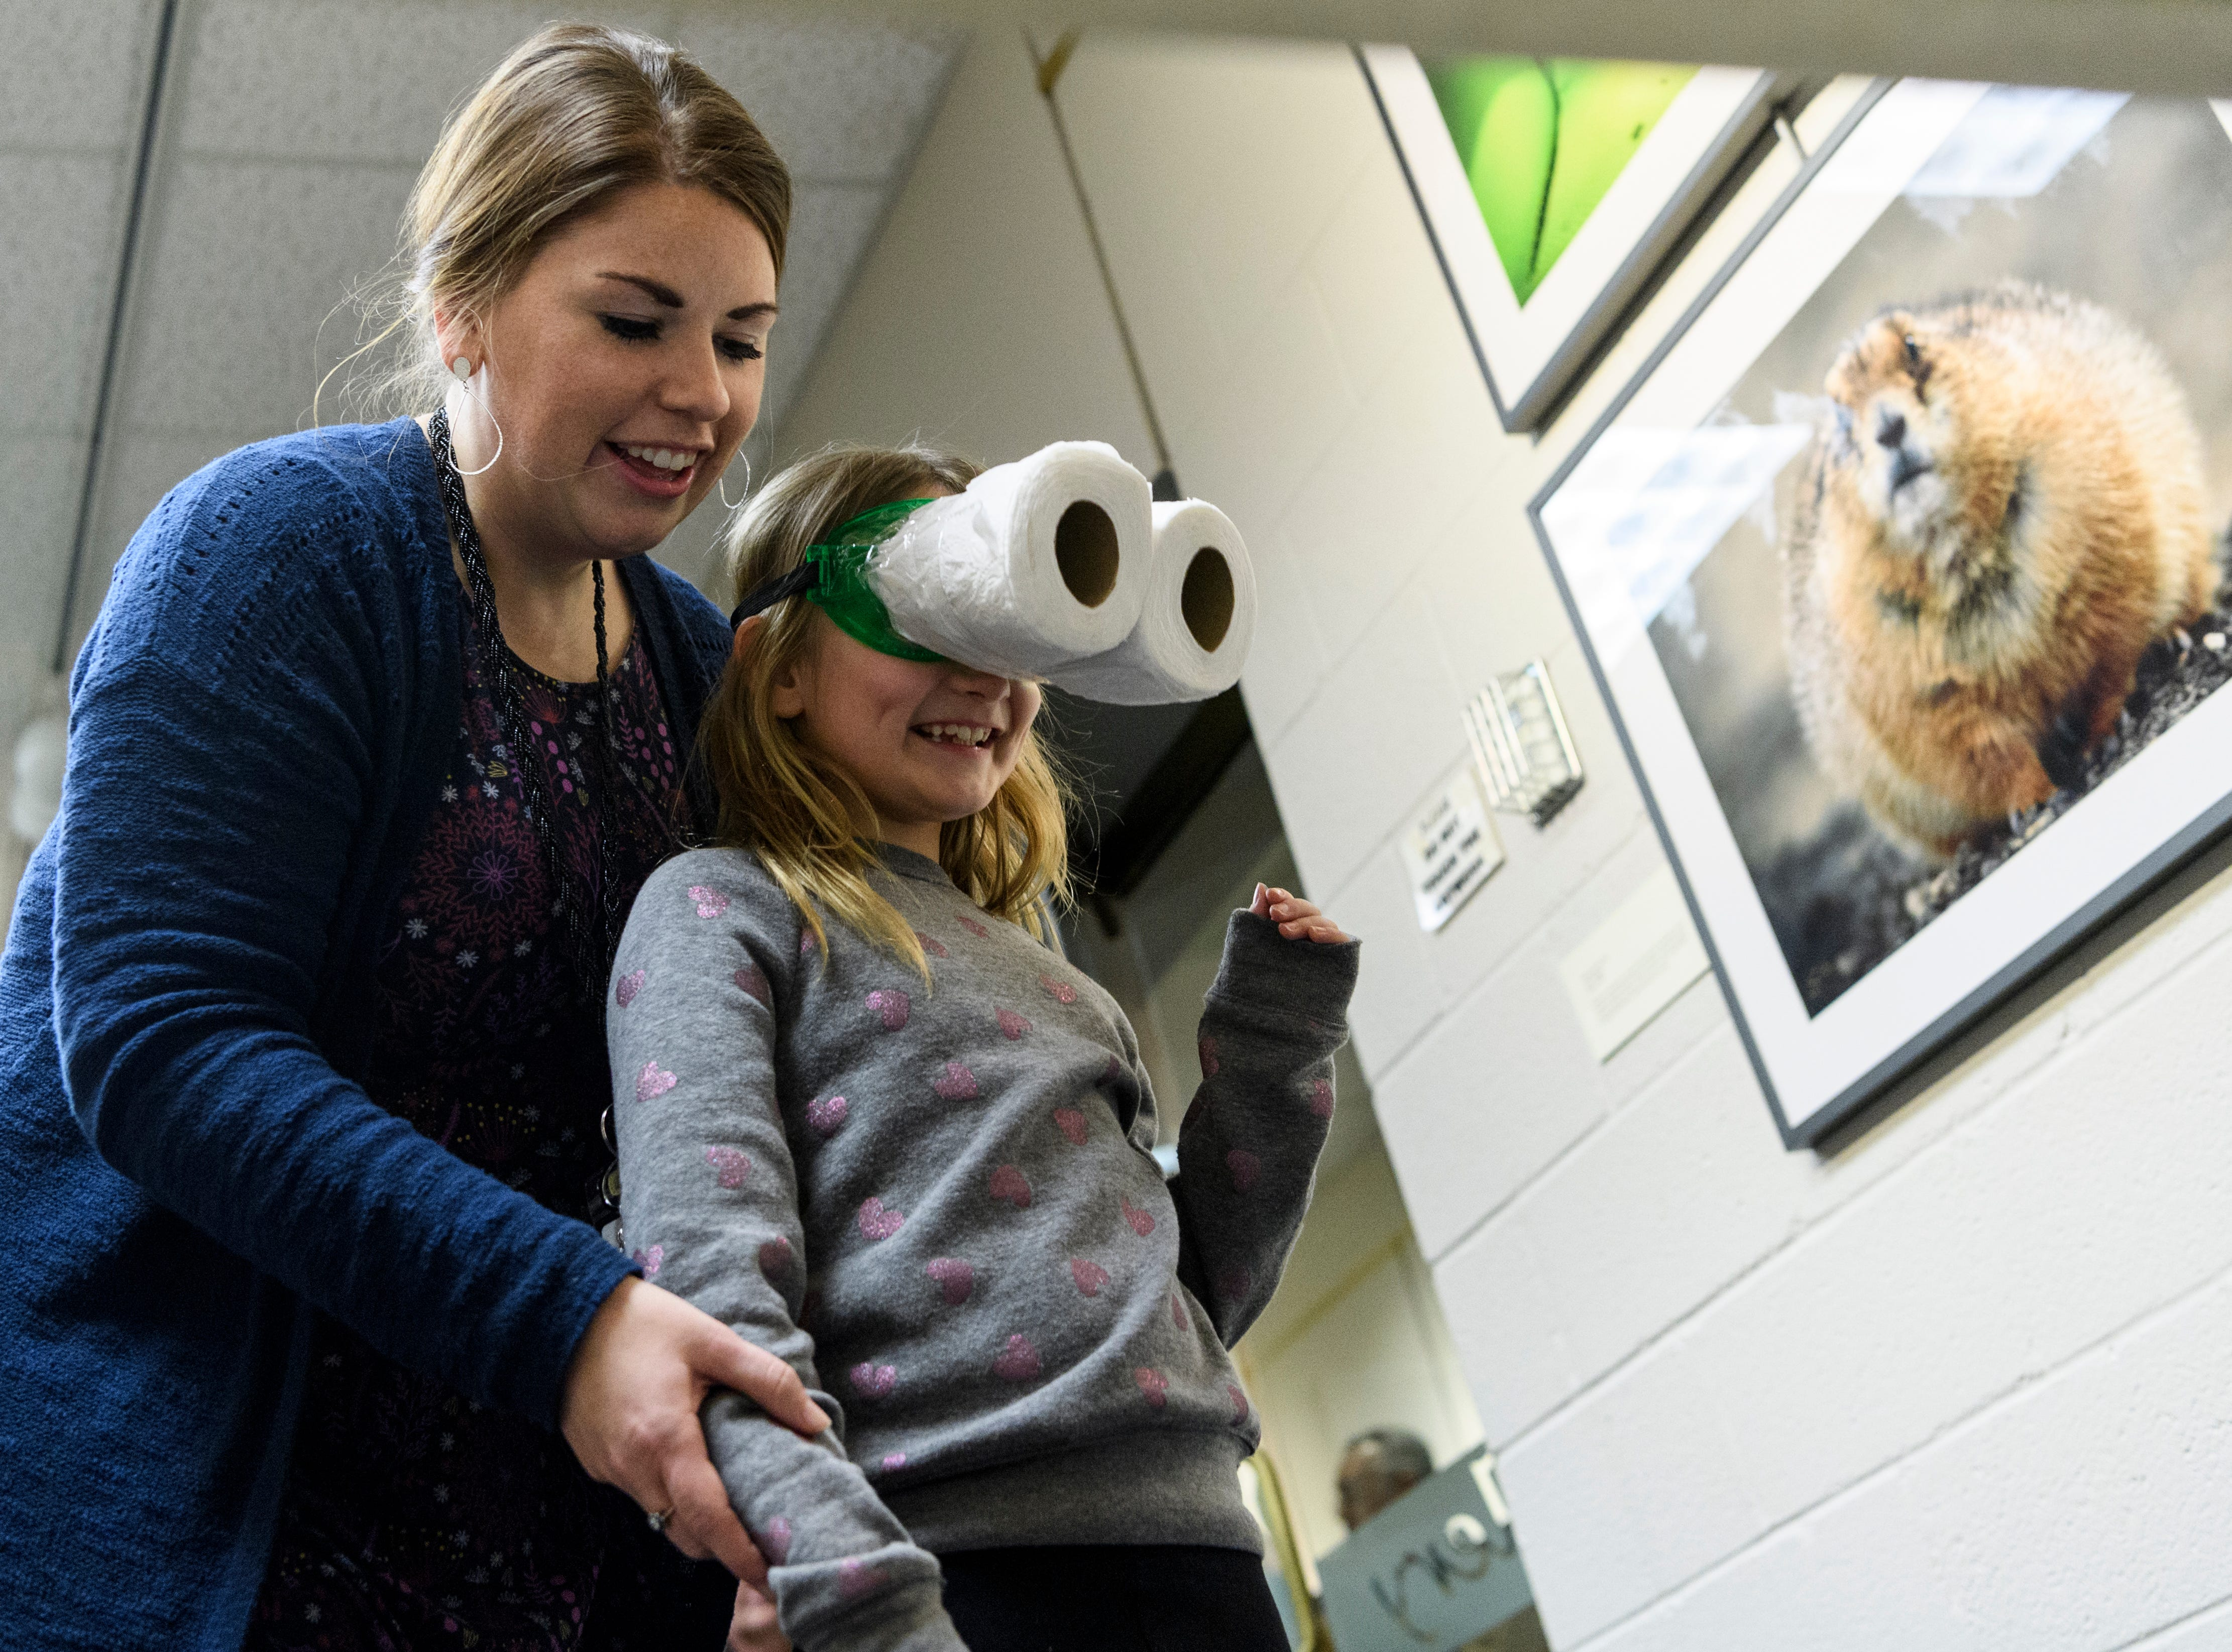 """Cairo Elementary school teacher Sarah Buckman helps second-grader Claire Stinson, 8, throw a clothespin into a plastic cup while wearing """"owl vision googles"""" during a nature education Family Night at Henderson Community College's Preston Arts Center in Henderson, Ky., Thursday, Jan. 24, 2019."""